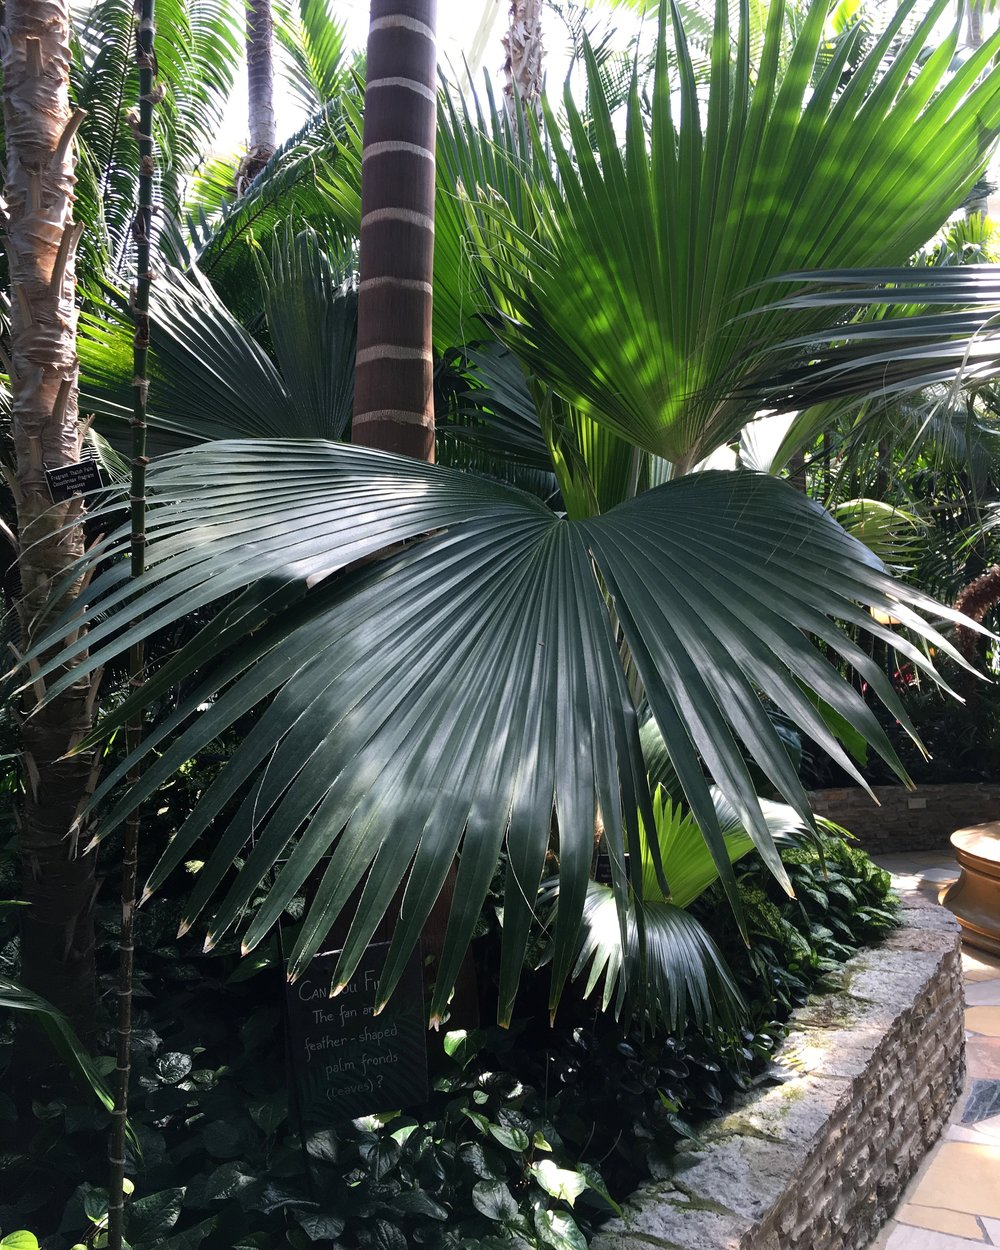 Bismarckia nobilis is my favorite palm tree. And this one was HUGE and so healthy!